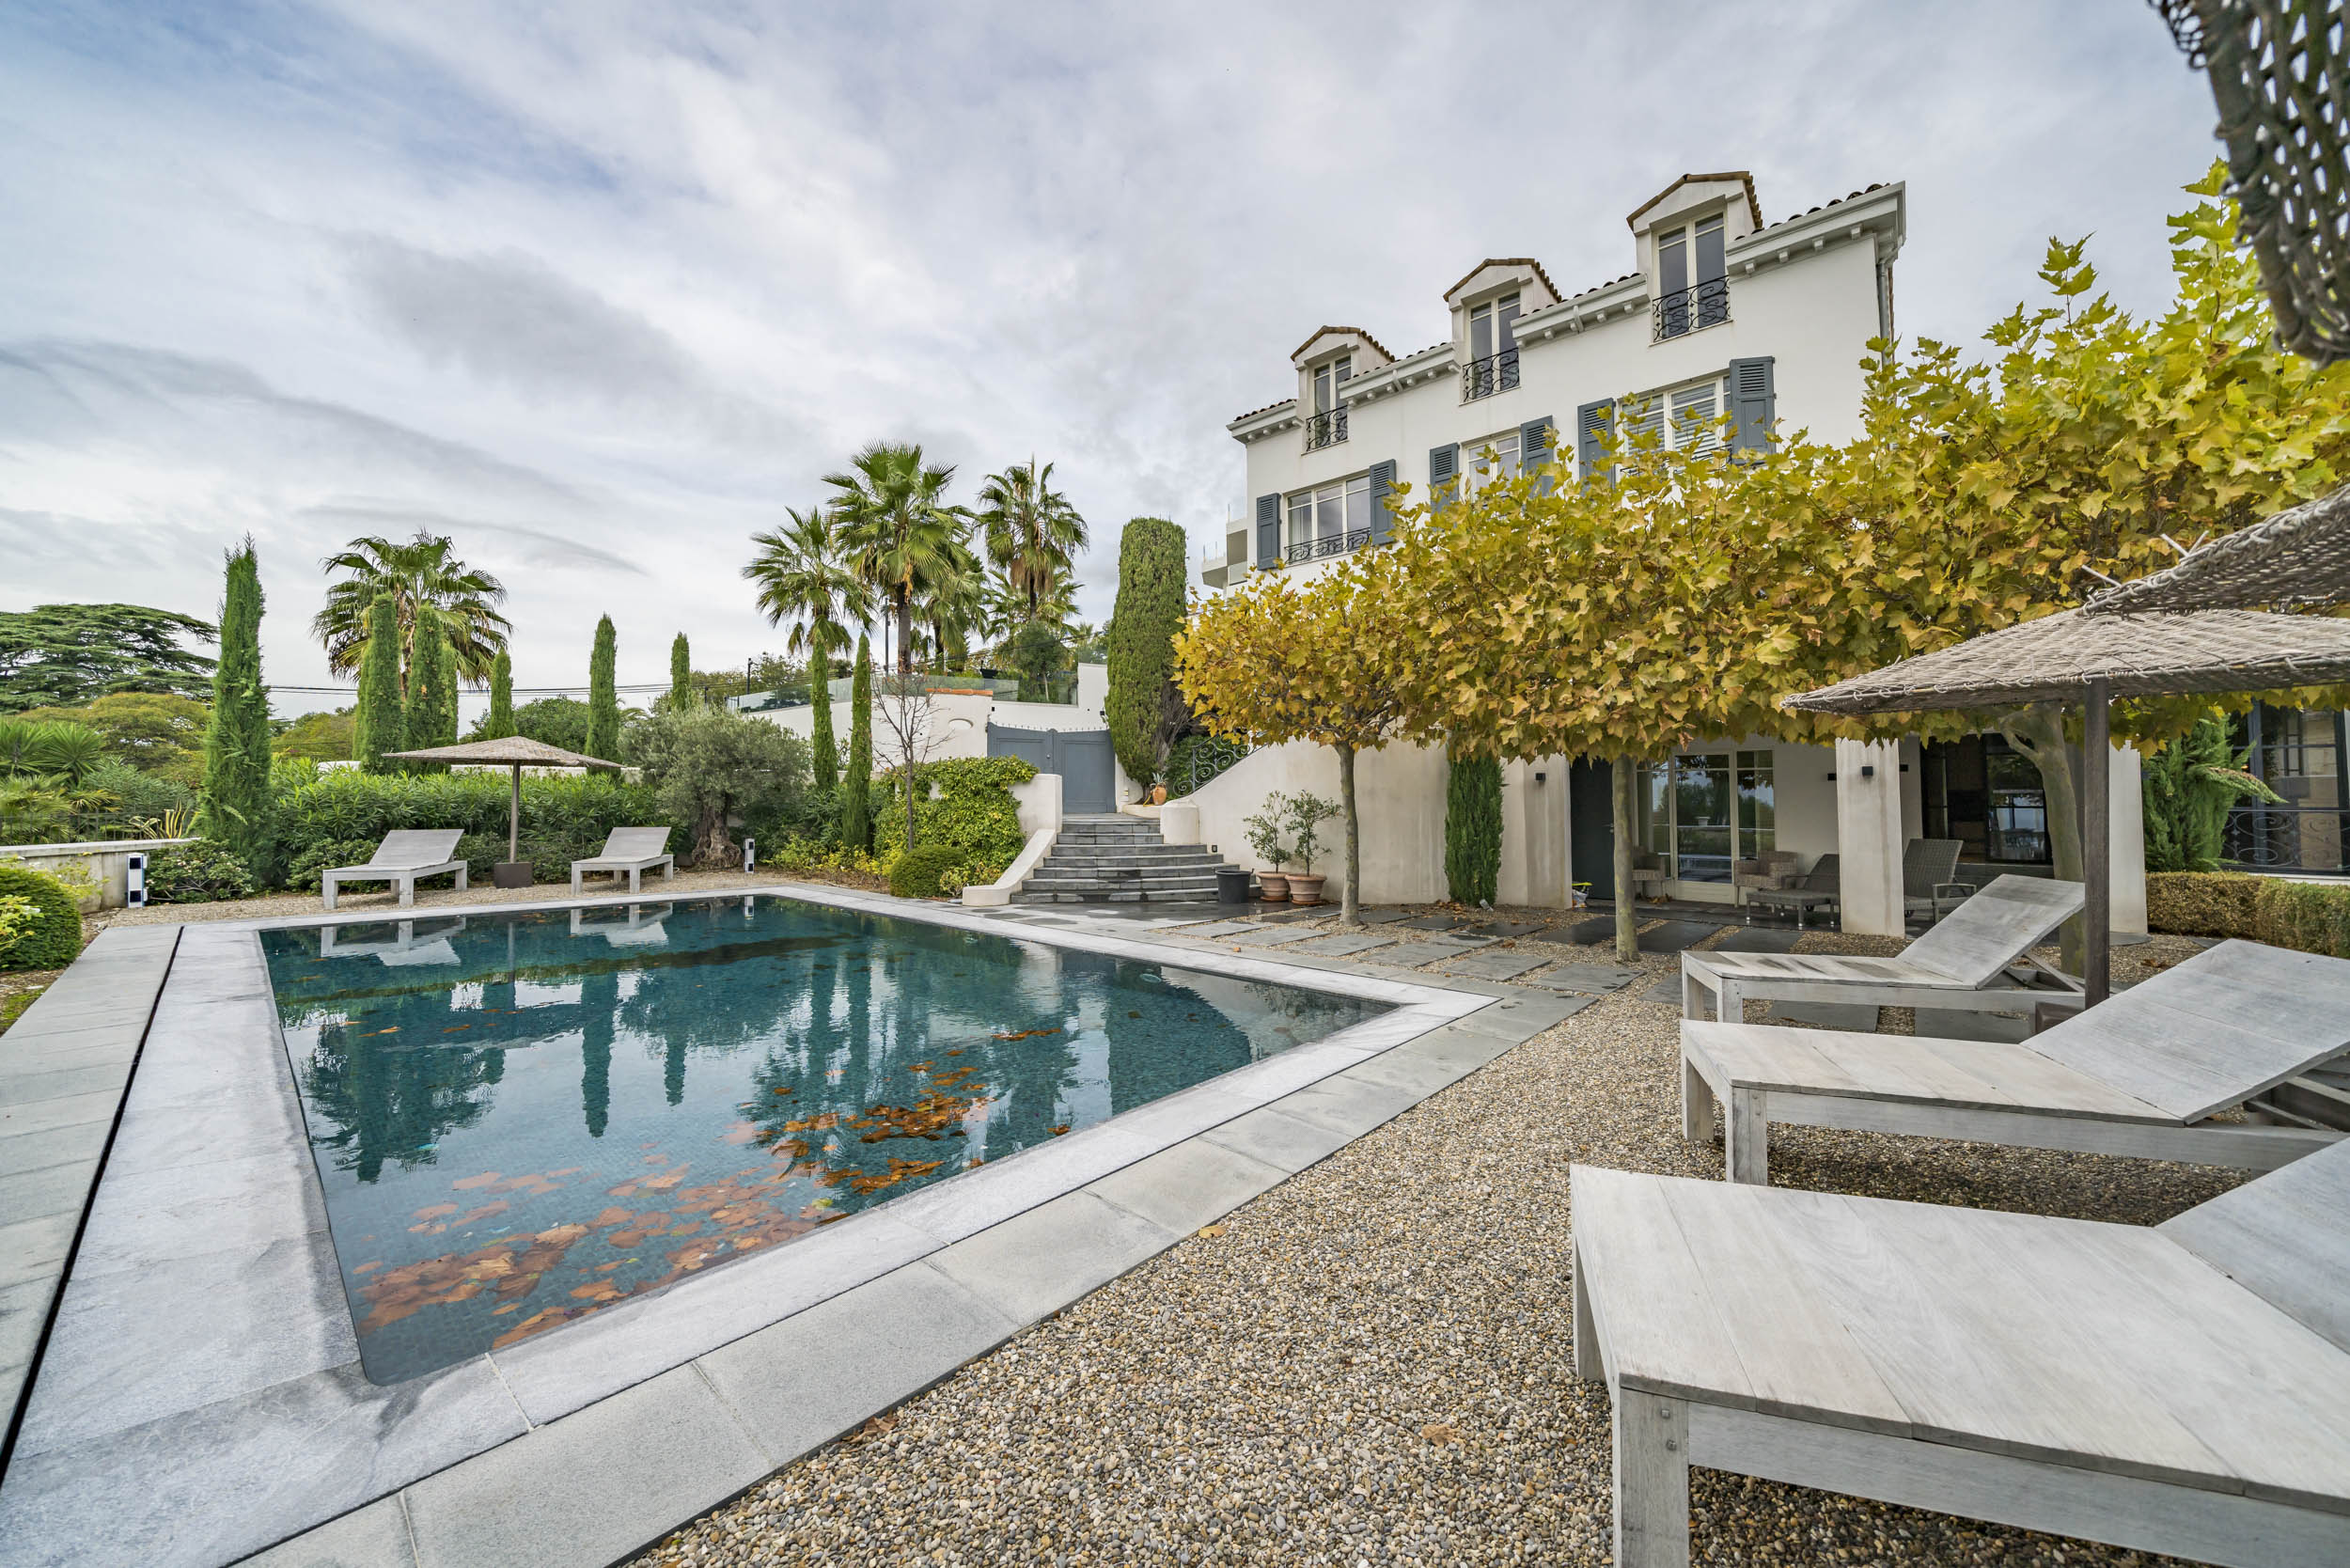 Property Image 1 - Estee Lauders former villa, 6 bedrooms located in the centre of Cannes only a short walk to the beach